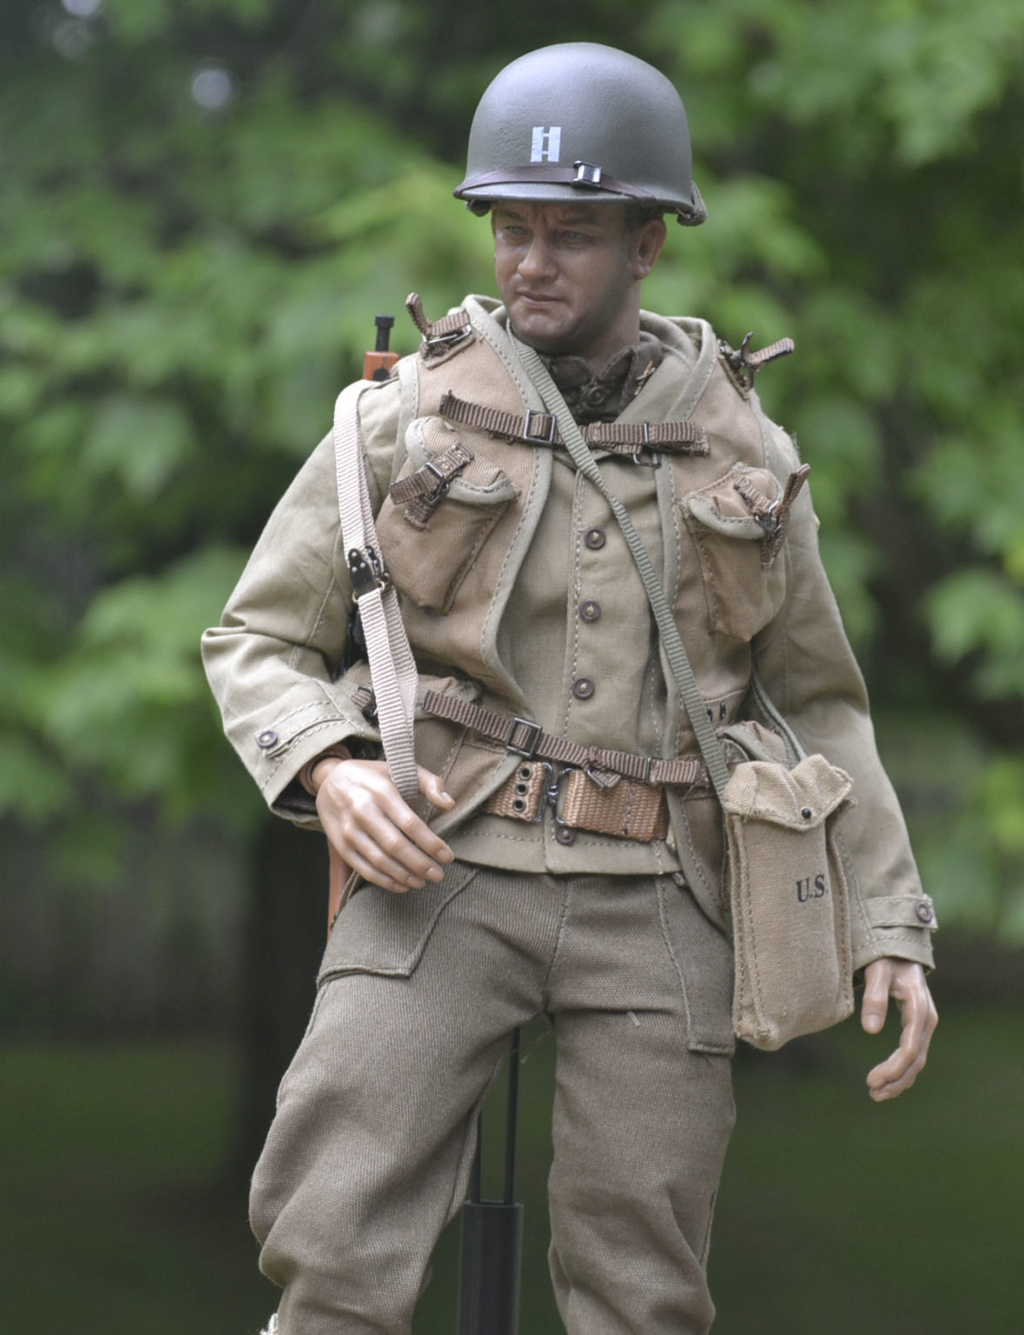 military - NEW PRODUCT: update notice Facepool: 1/6 WWII US RANGER CAPTAIN World War II US Rangers Captain - Anniversary _dsc3311